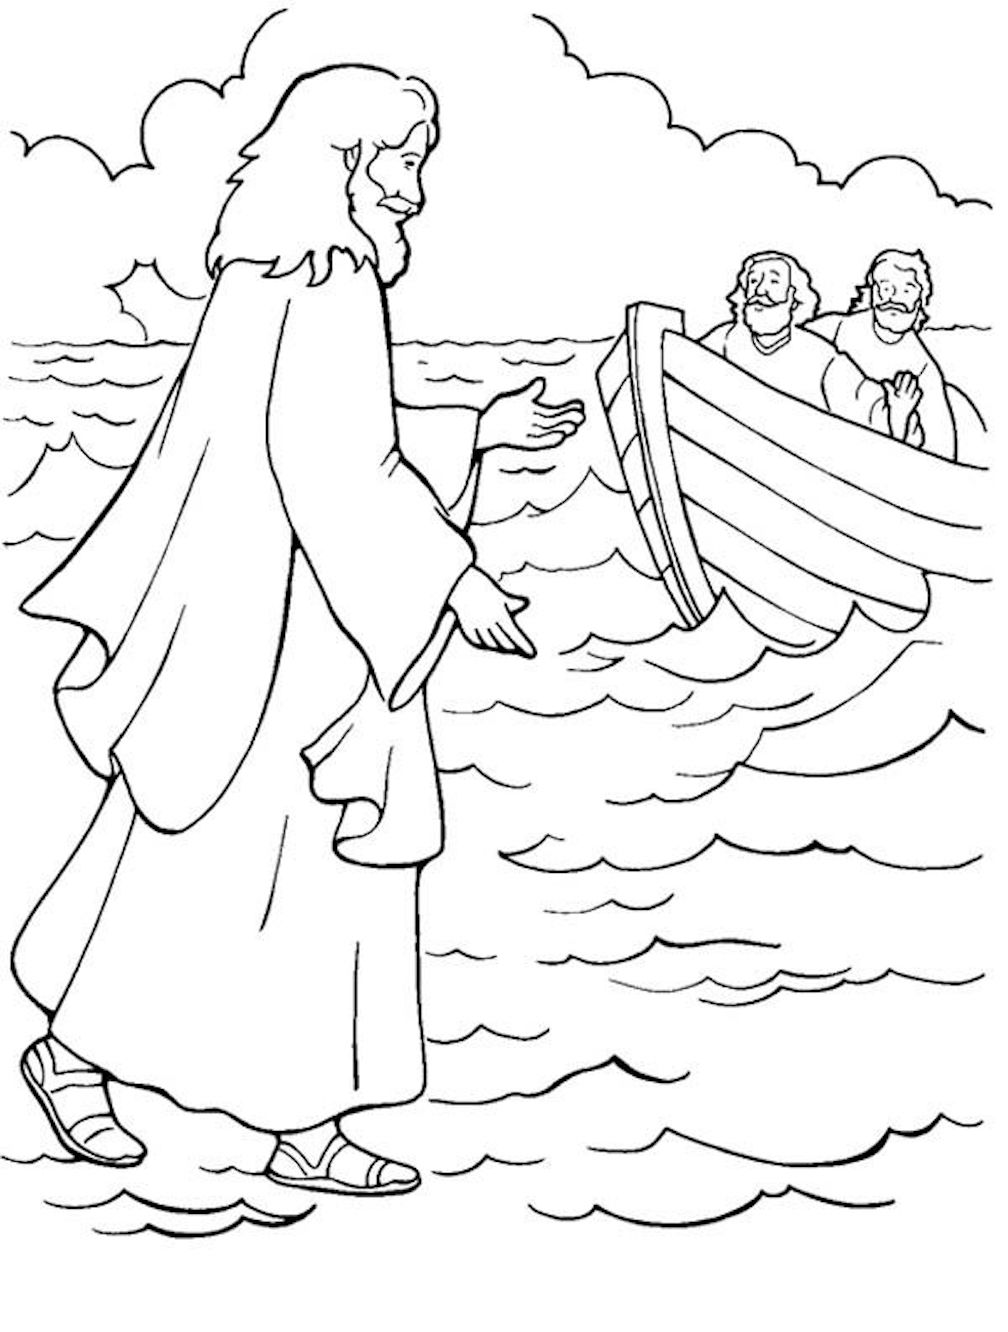 Free Printable Bible Coloring Sheets For Kids